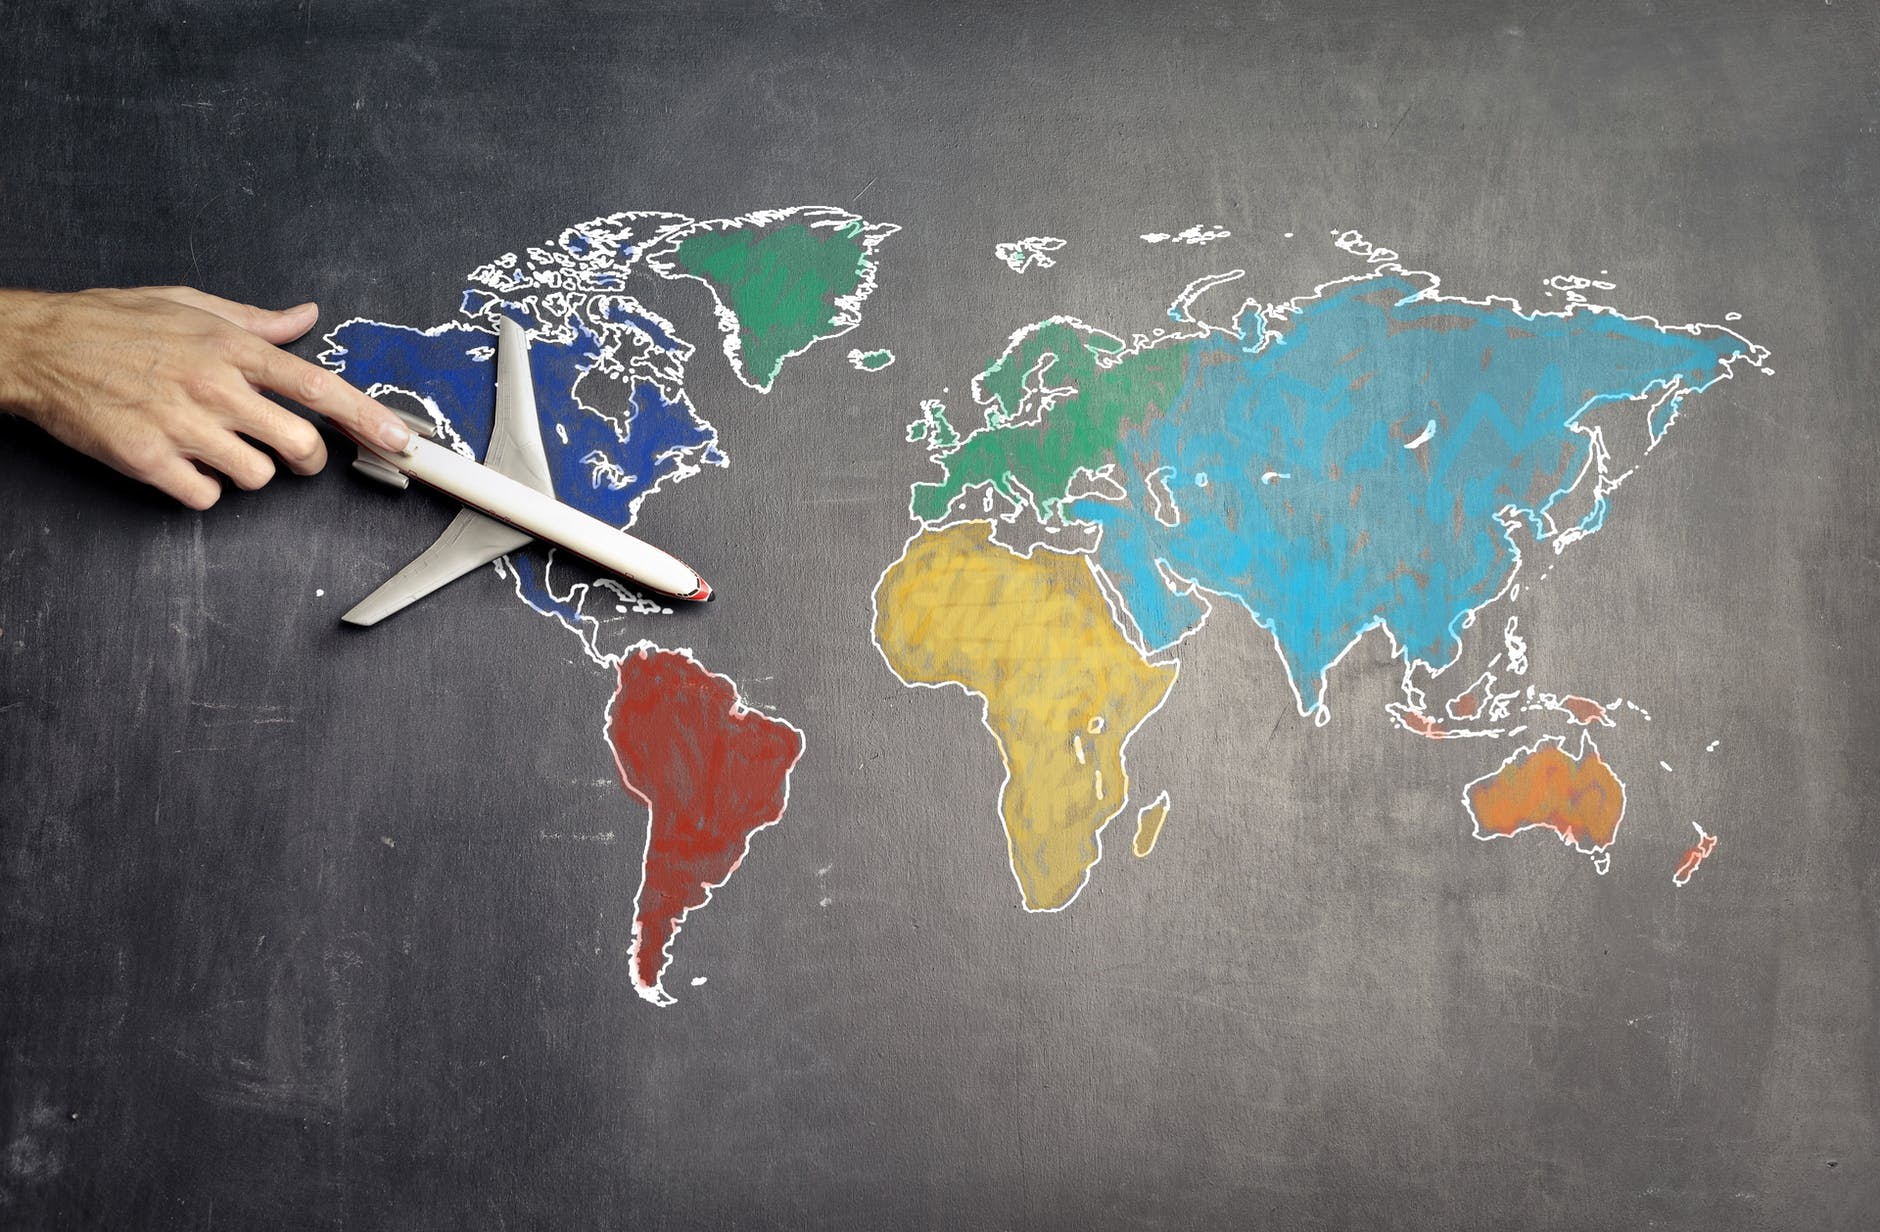 someone holding a toy aeroplane on top of a chalk created world map